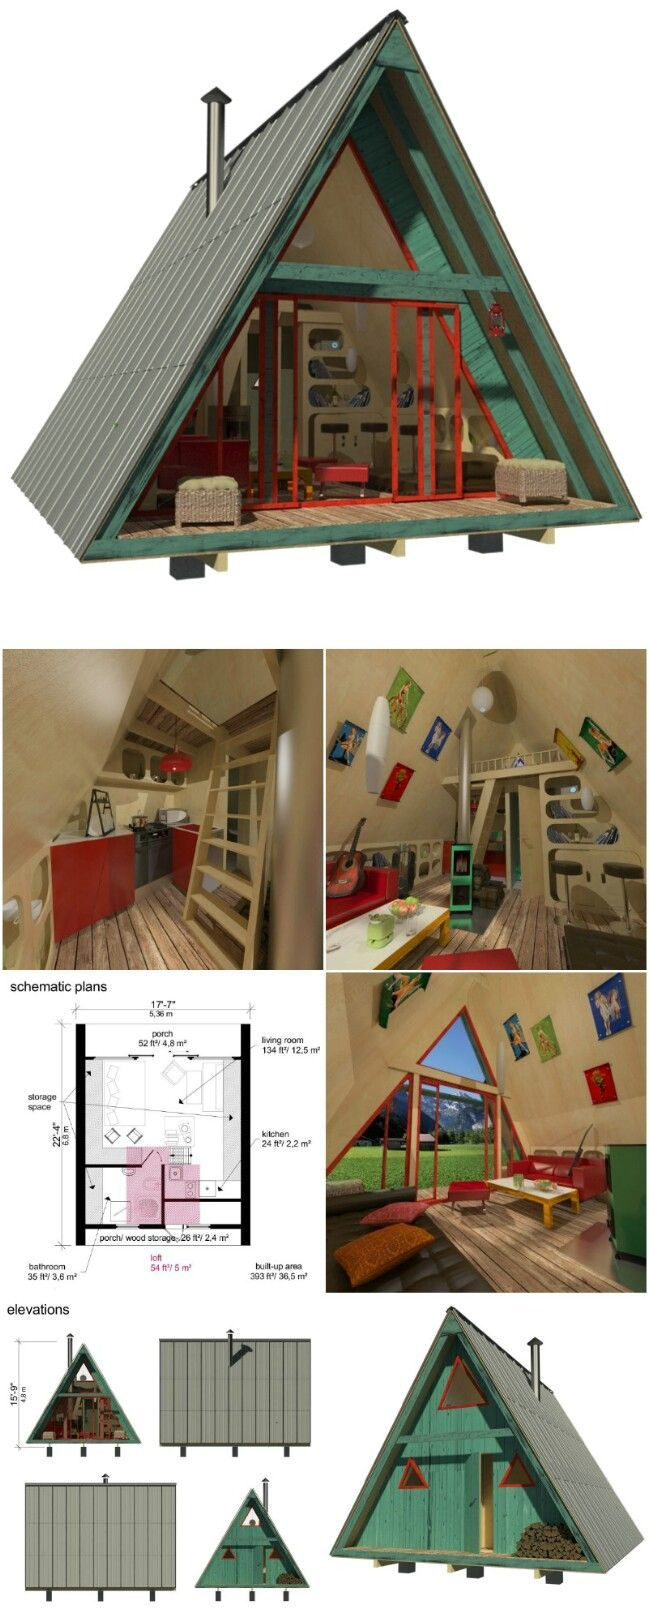 The Best Home Design Plans – Build Your Own Tiny House